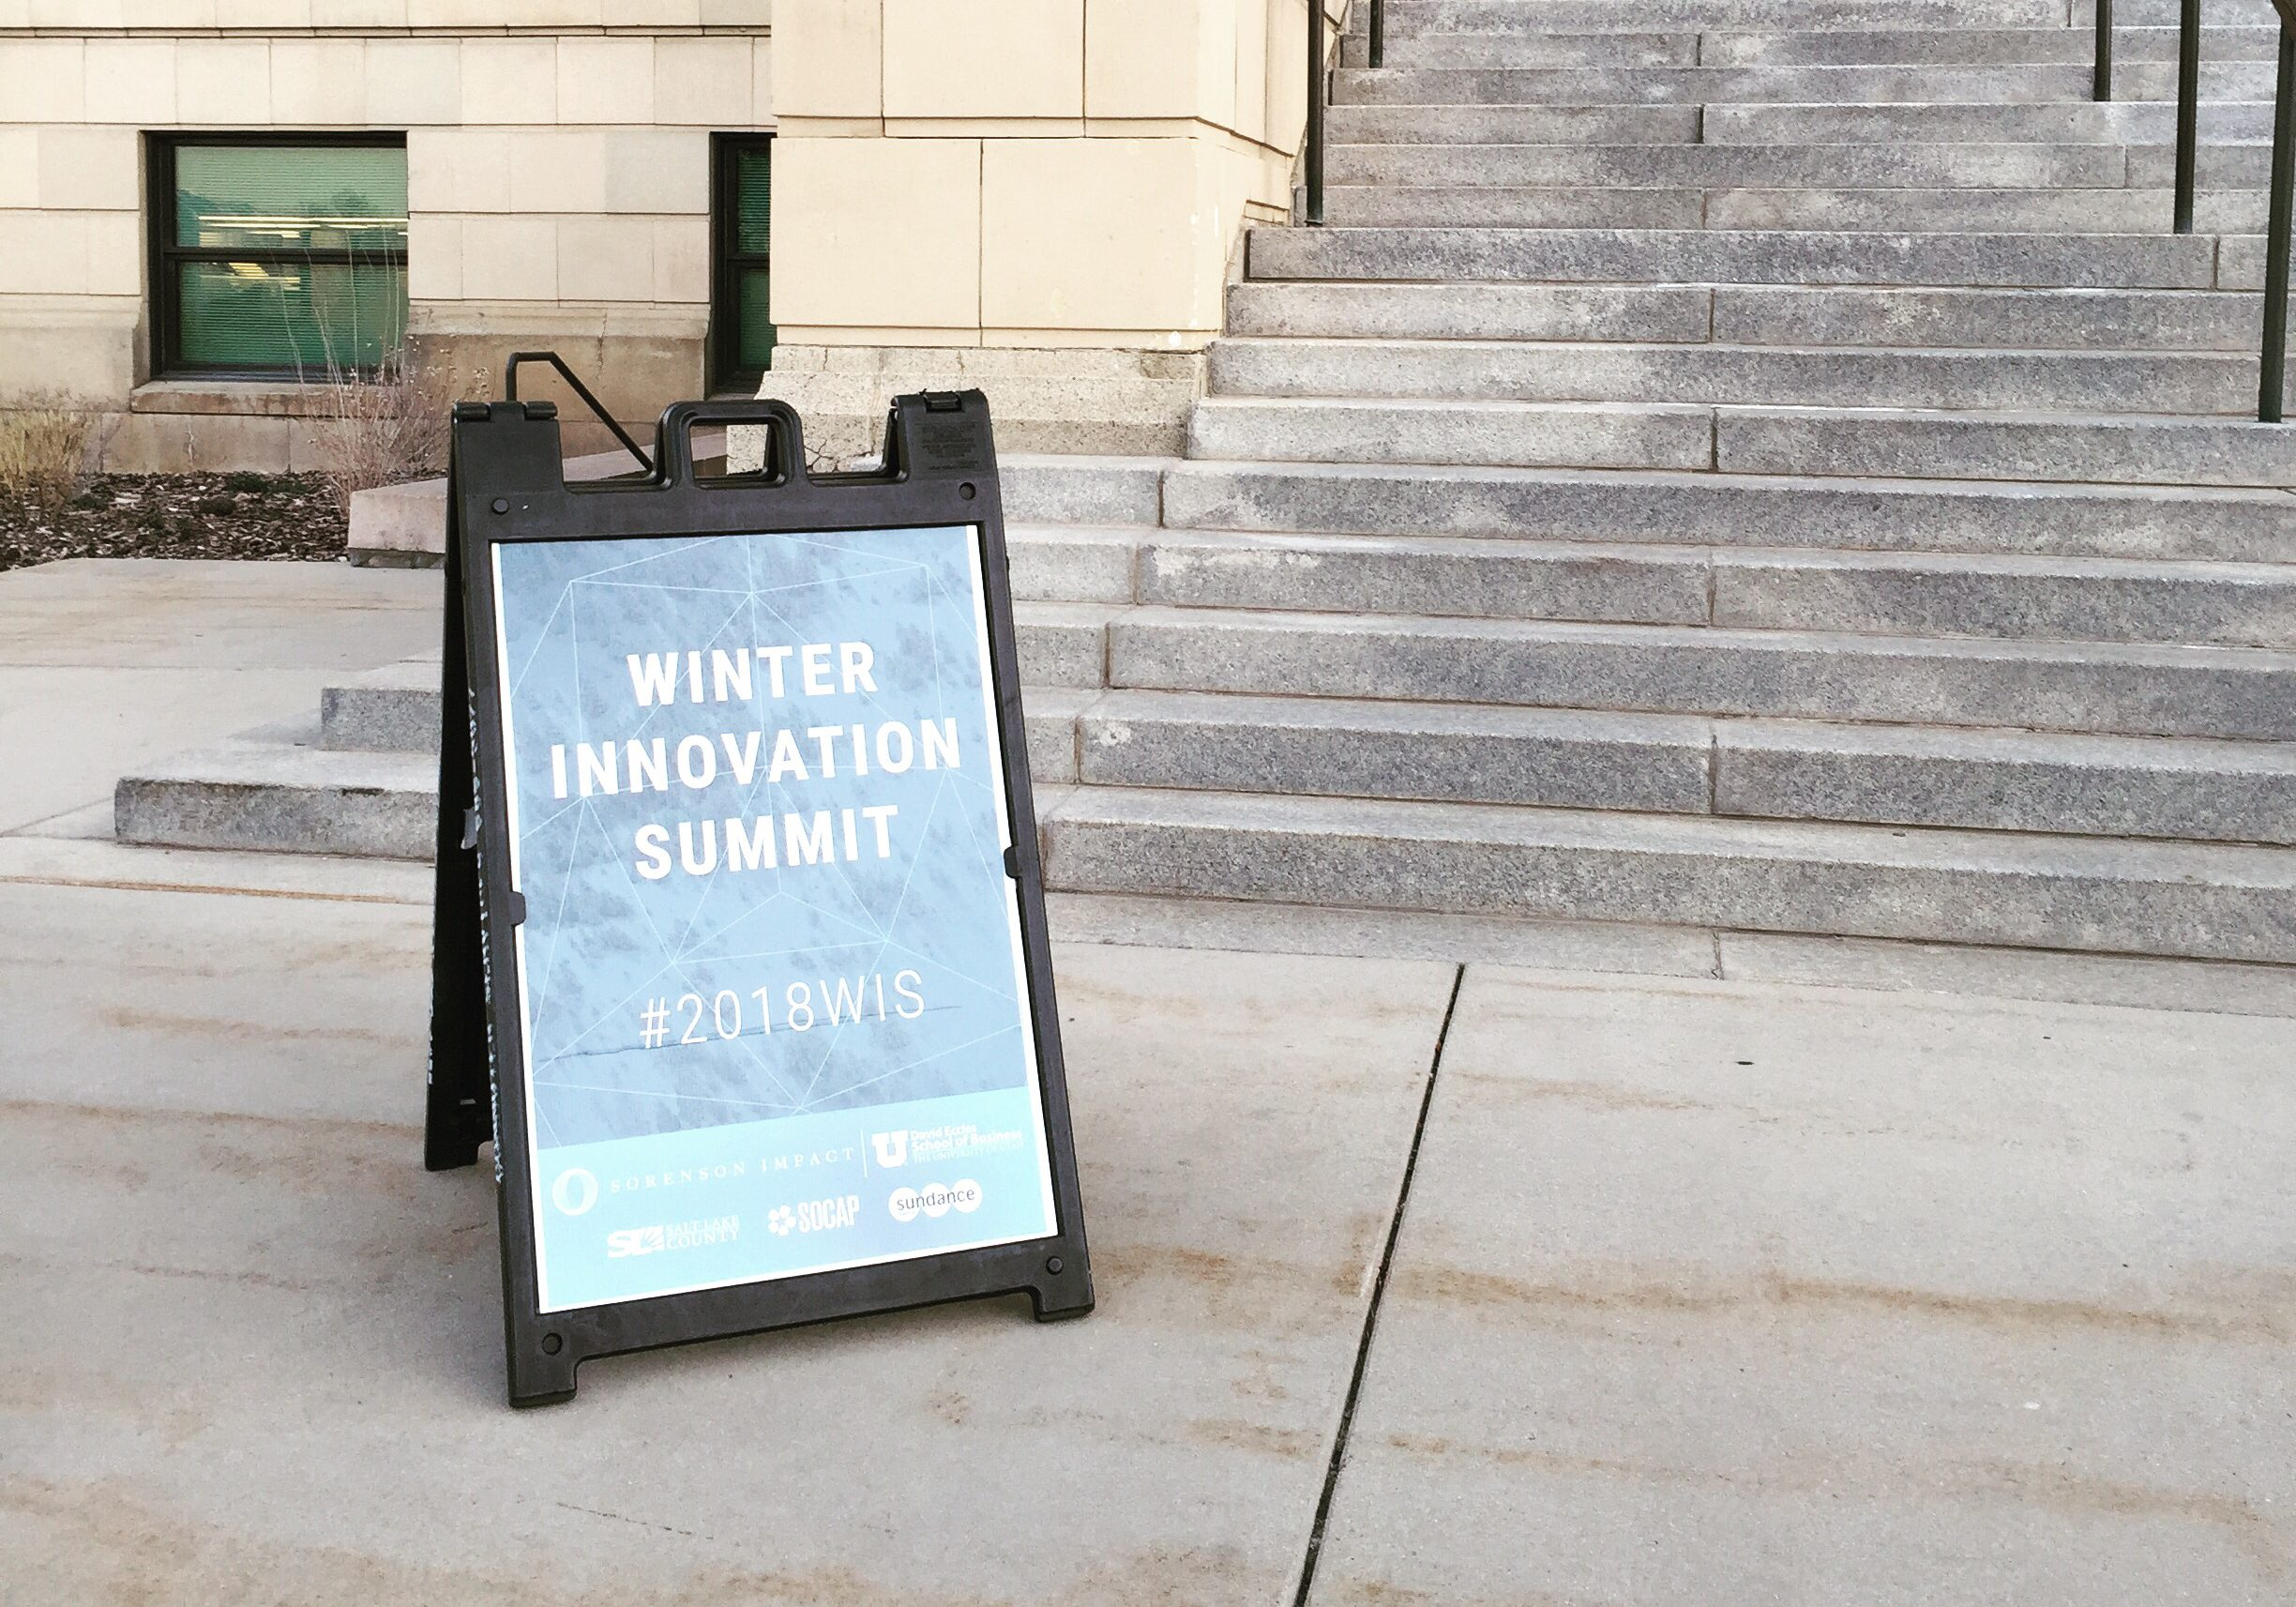 We had a fantastic first day at the Winter Innovation Summit with Sorenson Impact! Here are some of the highlights.